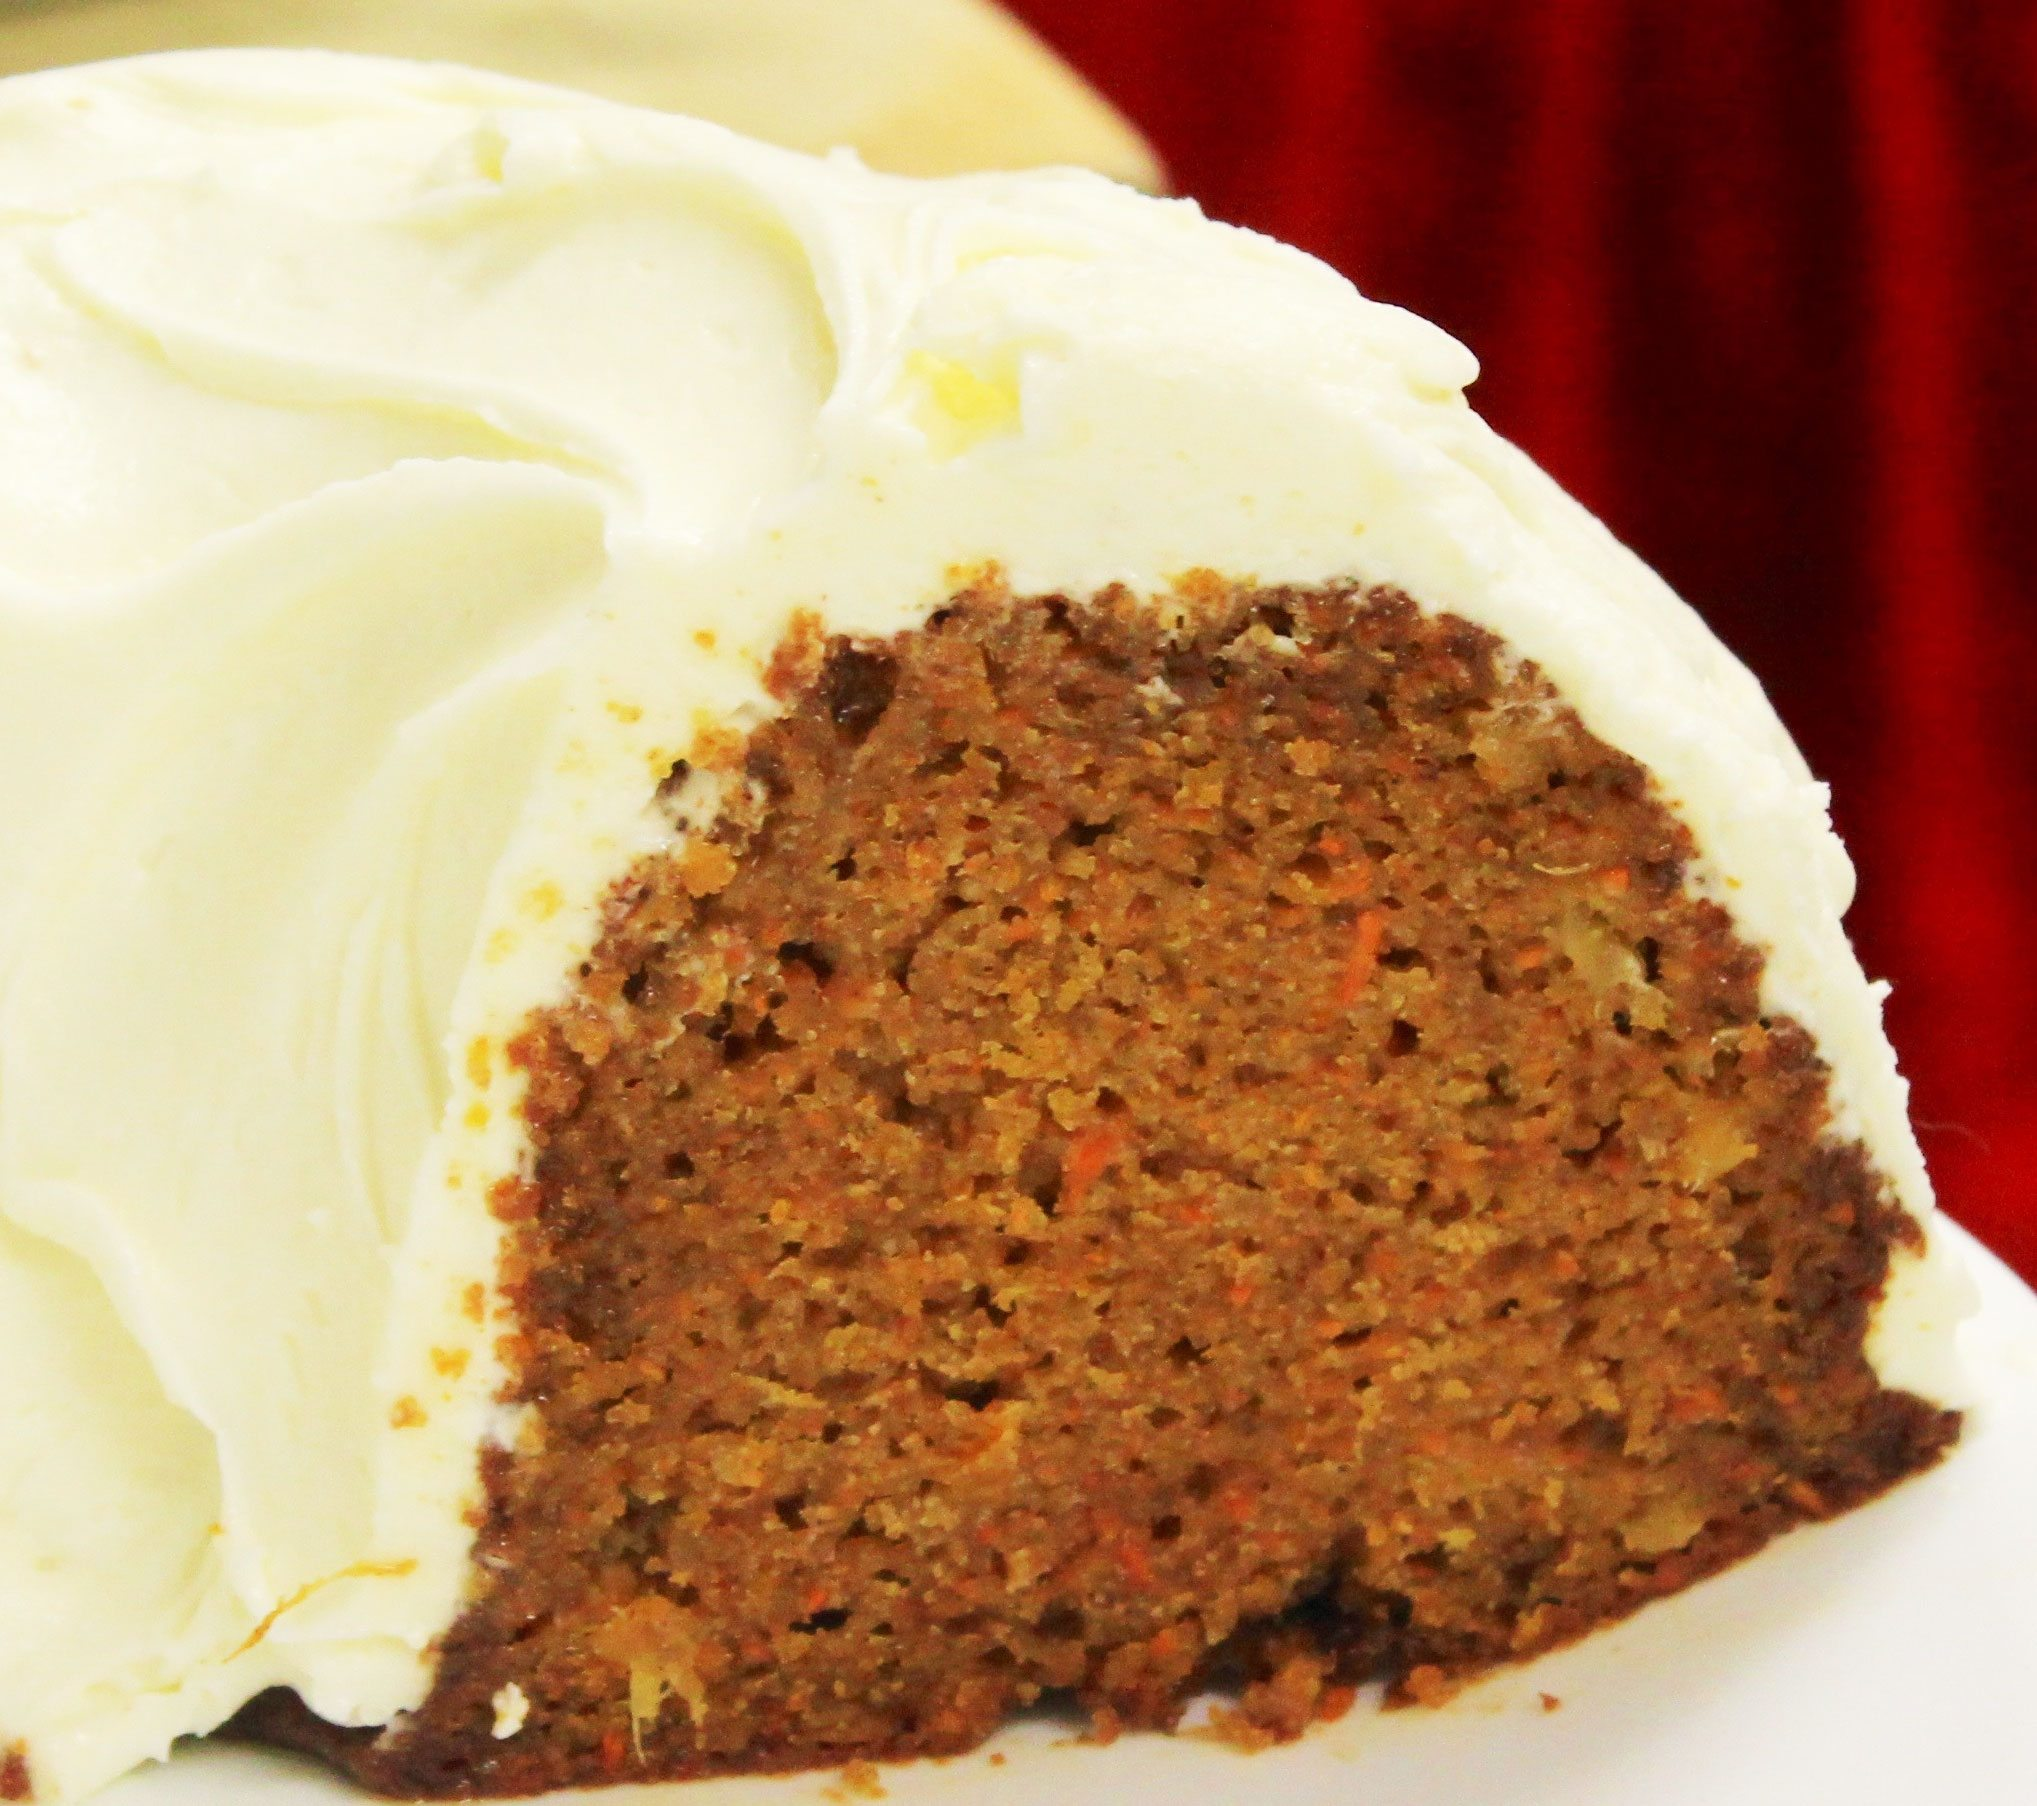 Robin's Nest Tea Room's carrot cake. Photo: Joanna Tymkiw